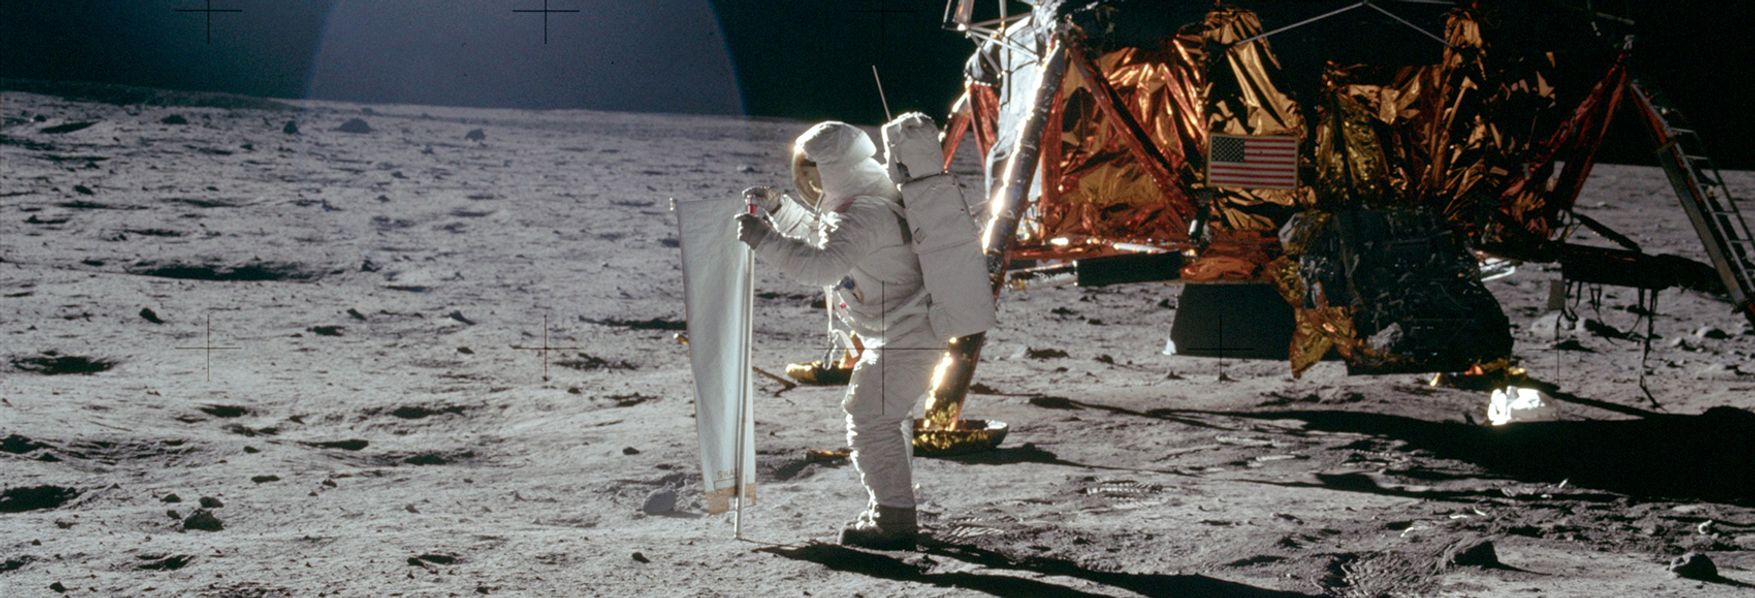 Why We Know the Lunar Missions Were Real - OpenMind